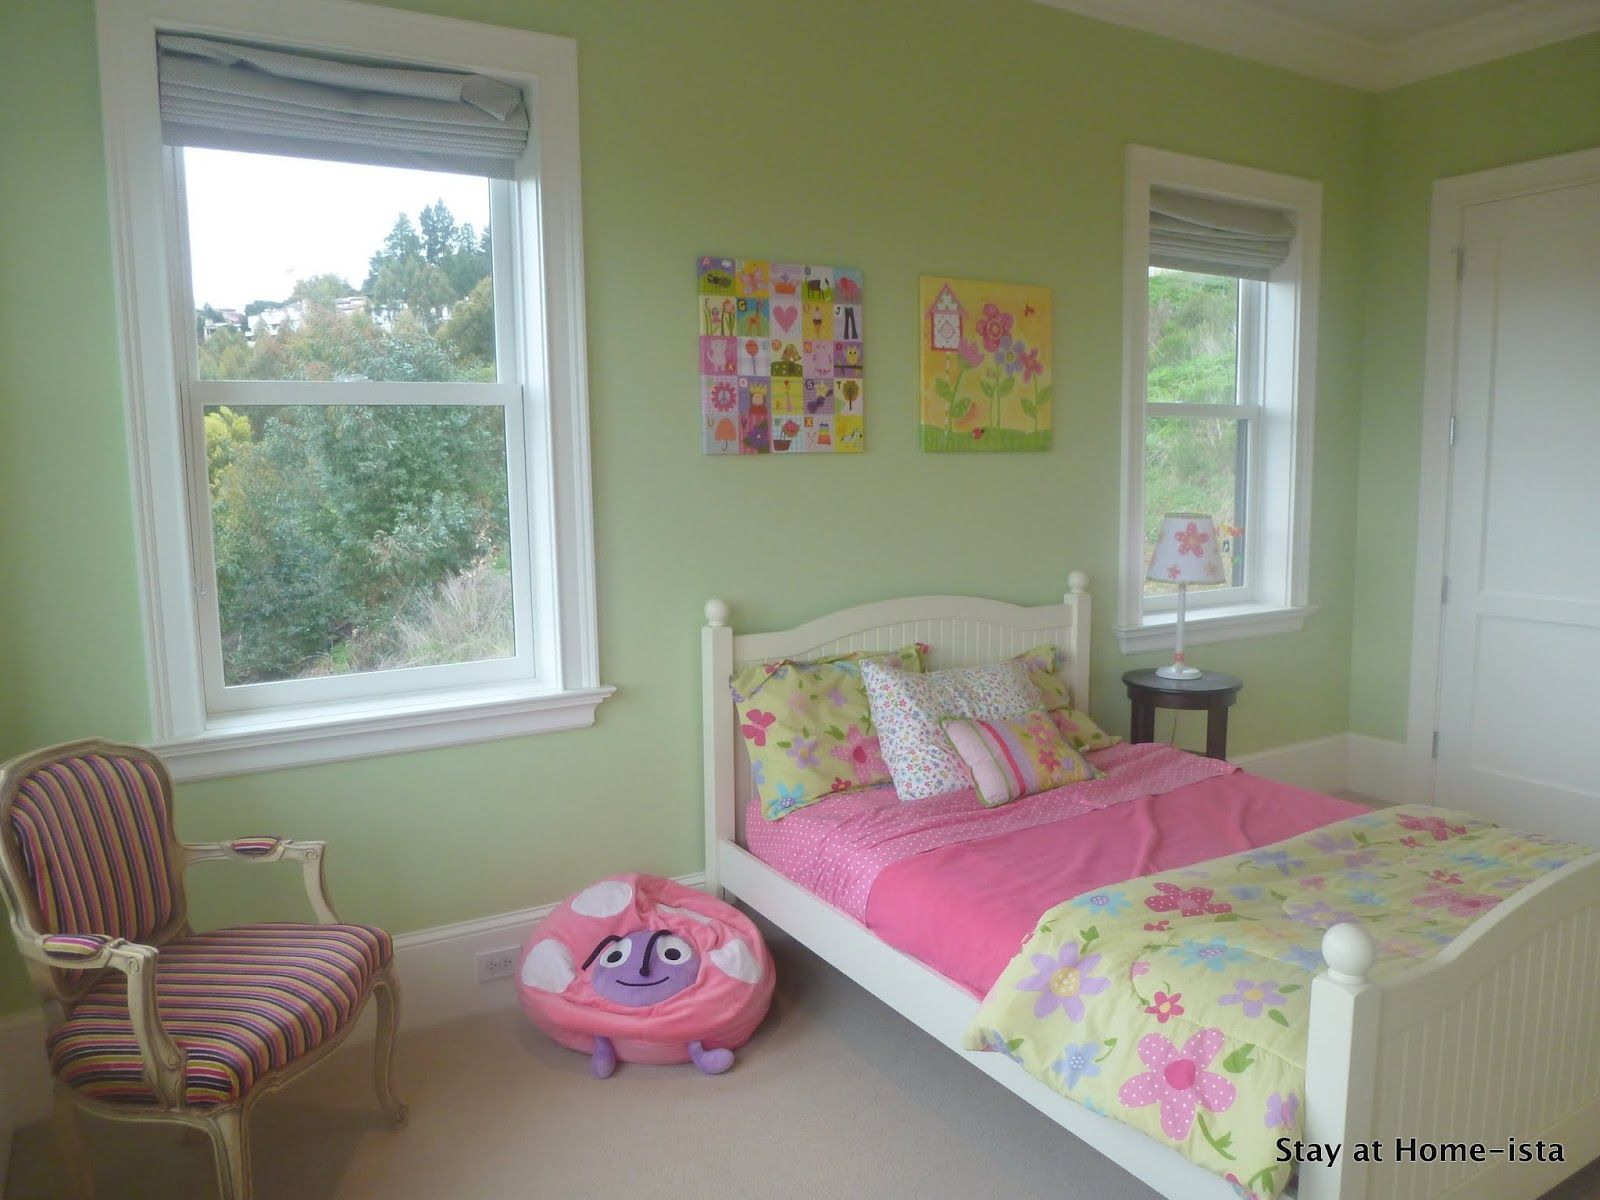 Little Girl Bedroom Ideas Painting teens bedroom:girl bedroom ideas painting lounge chair bedroom